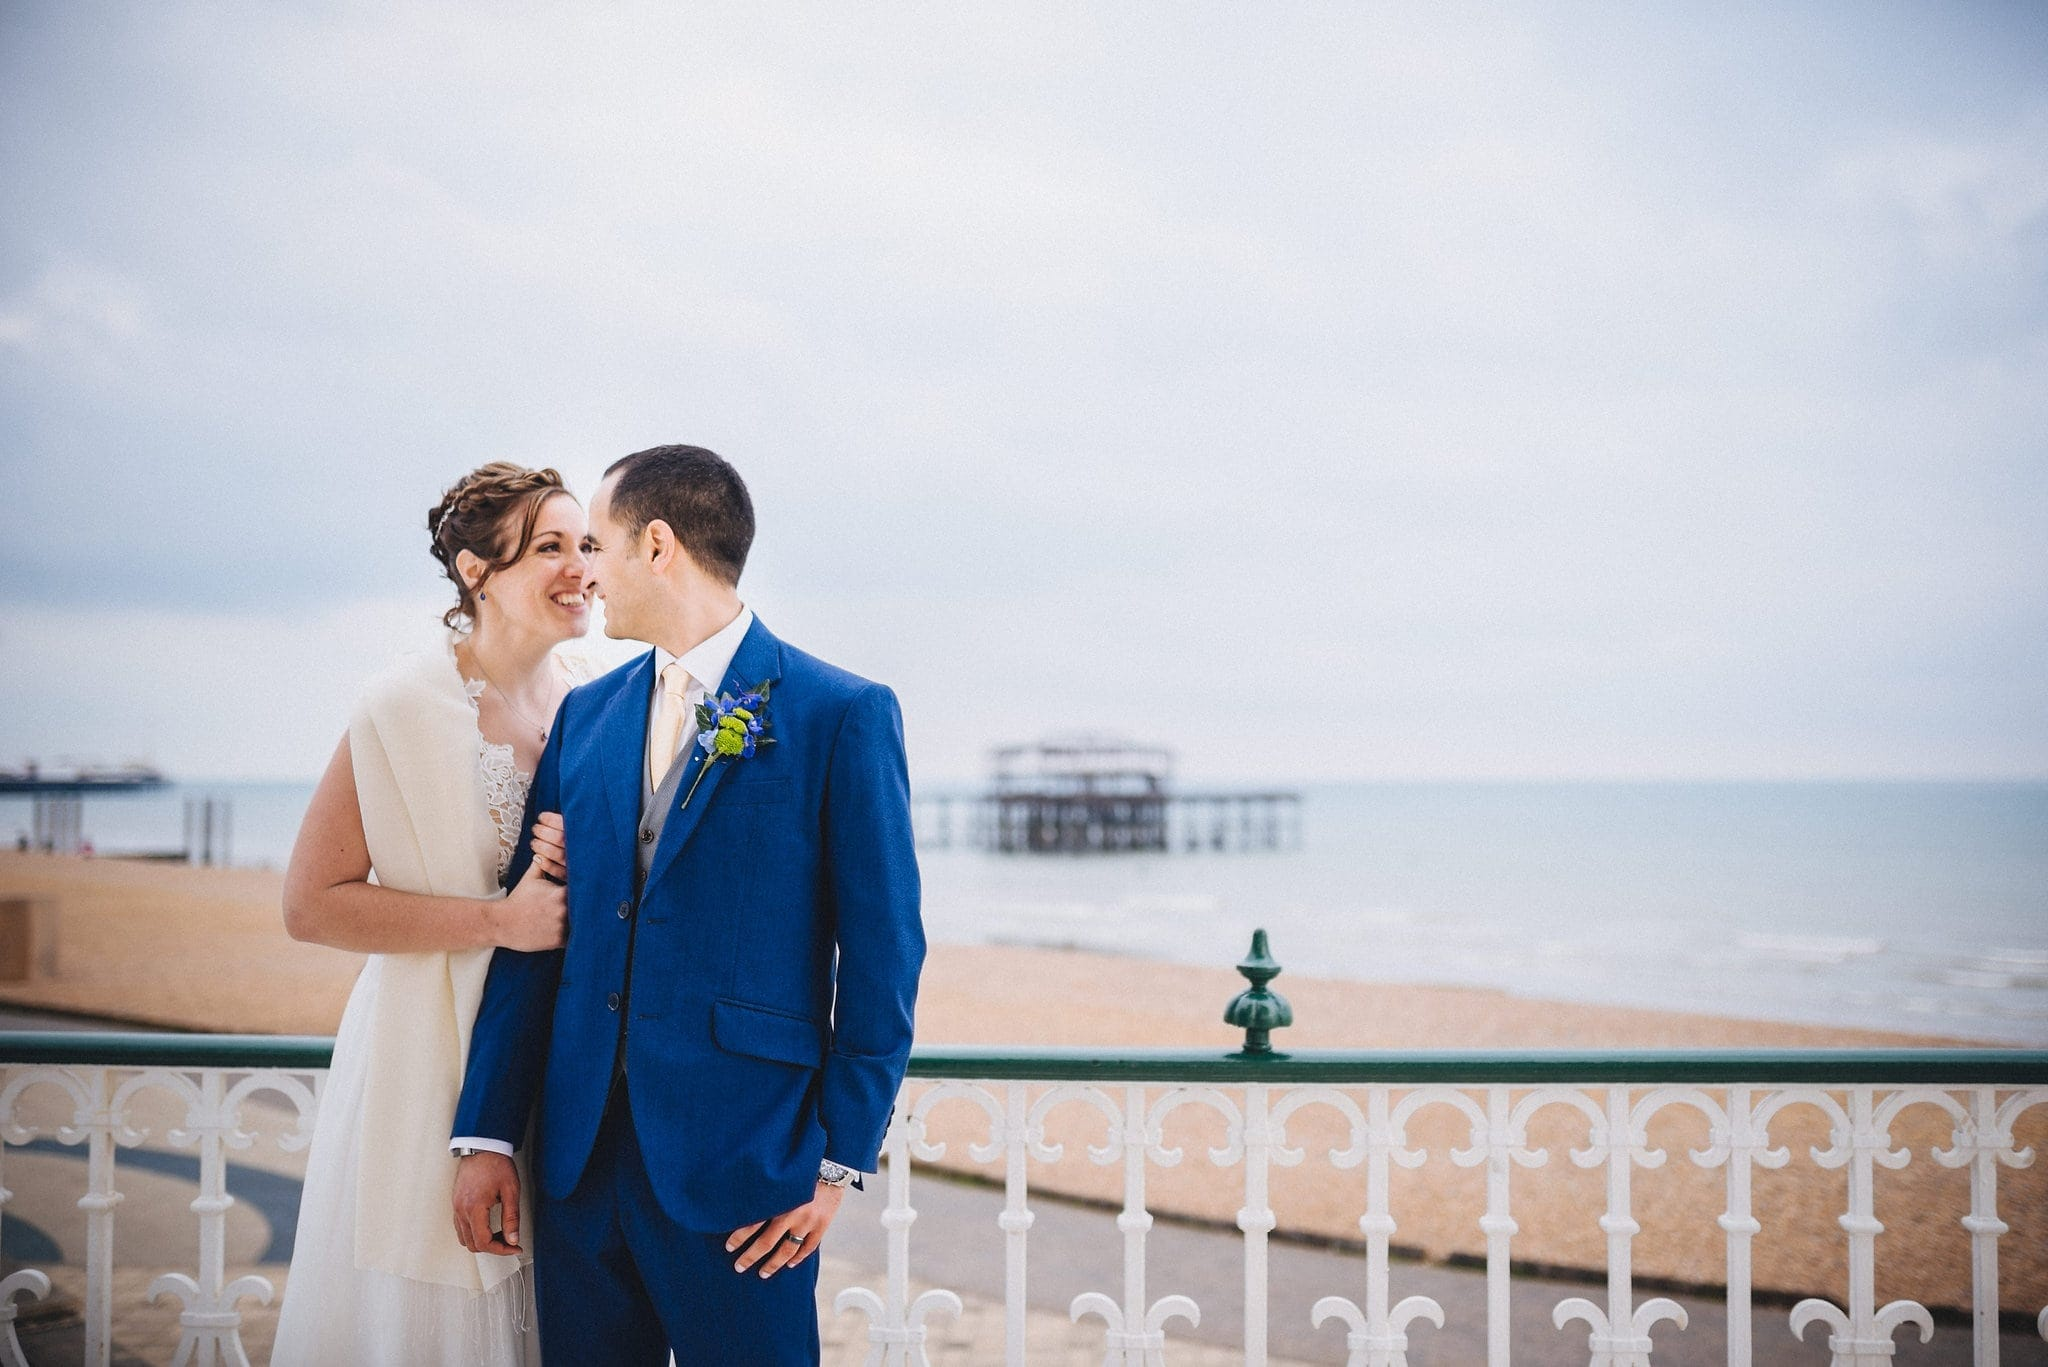 Bride holds groom's arm on Brighton bandstand with beach in the background